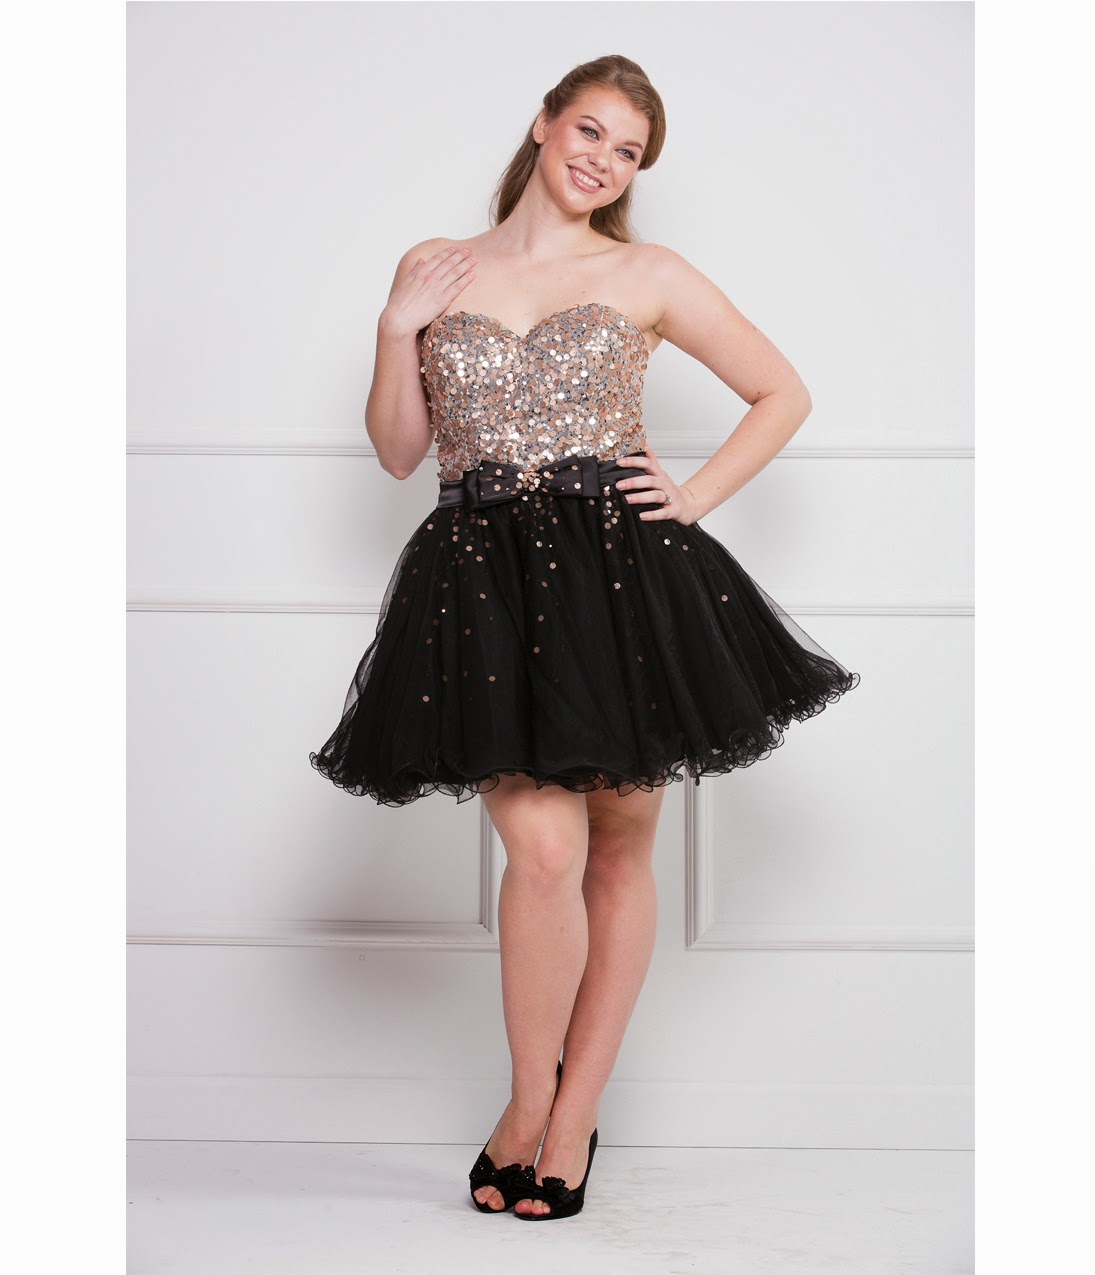 delight short plus size prom dresses gowns 2014 prom